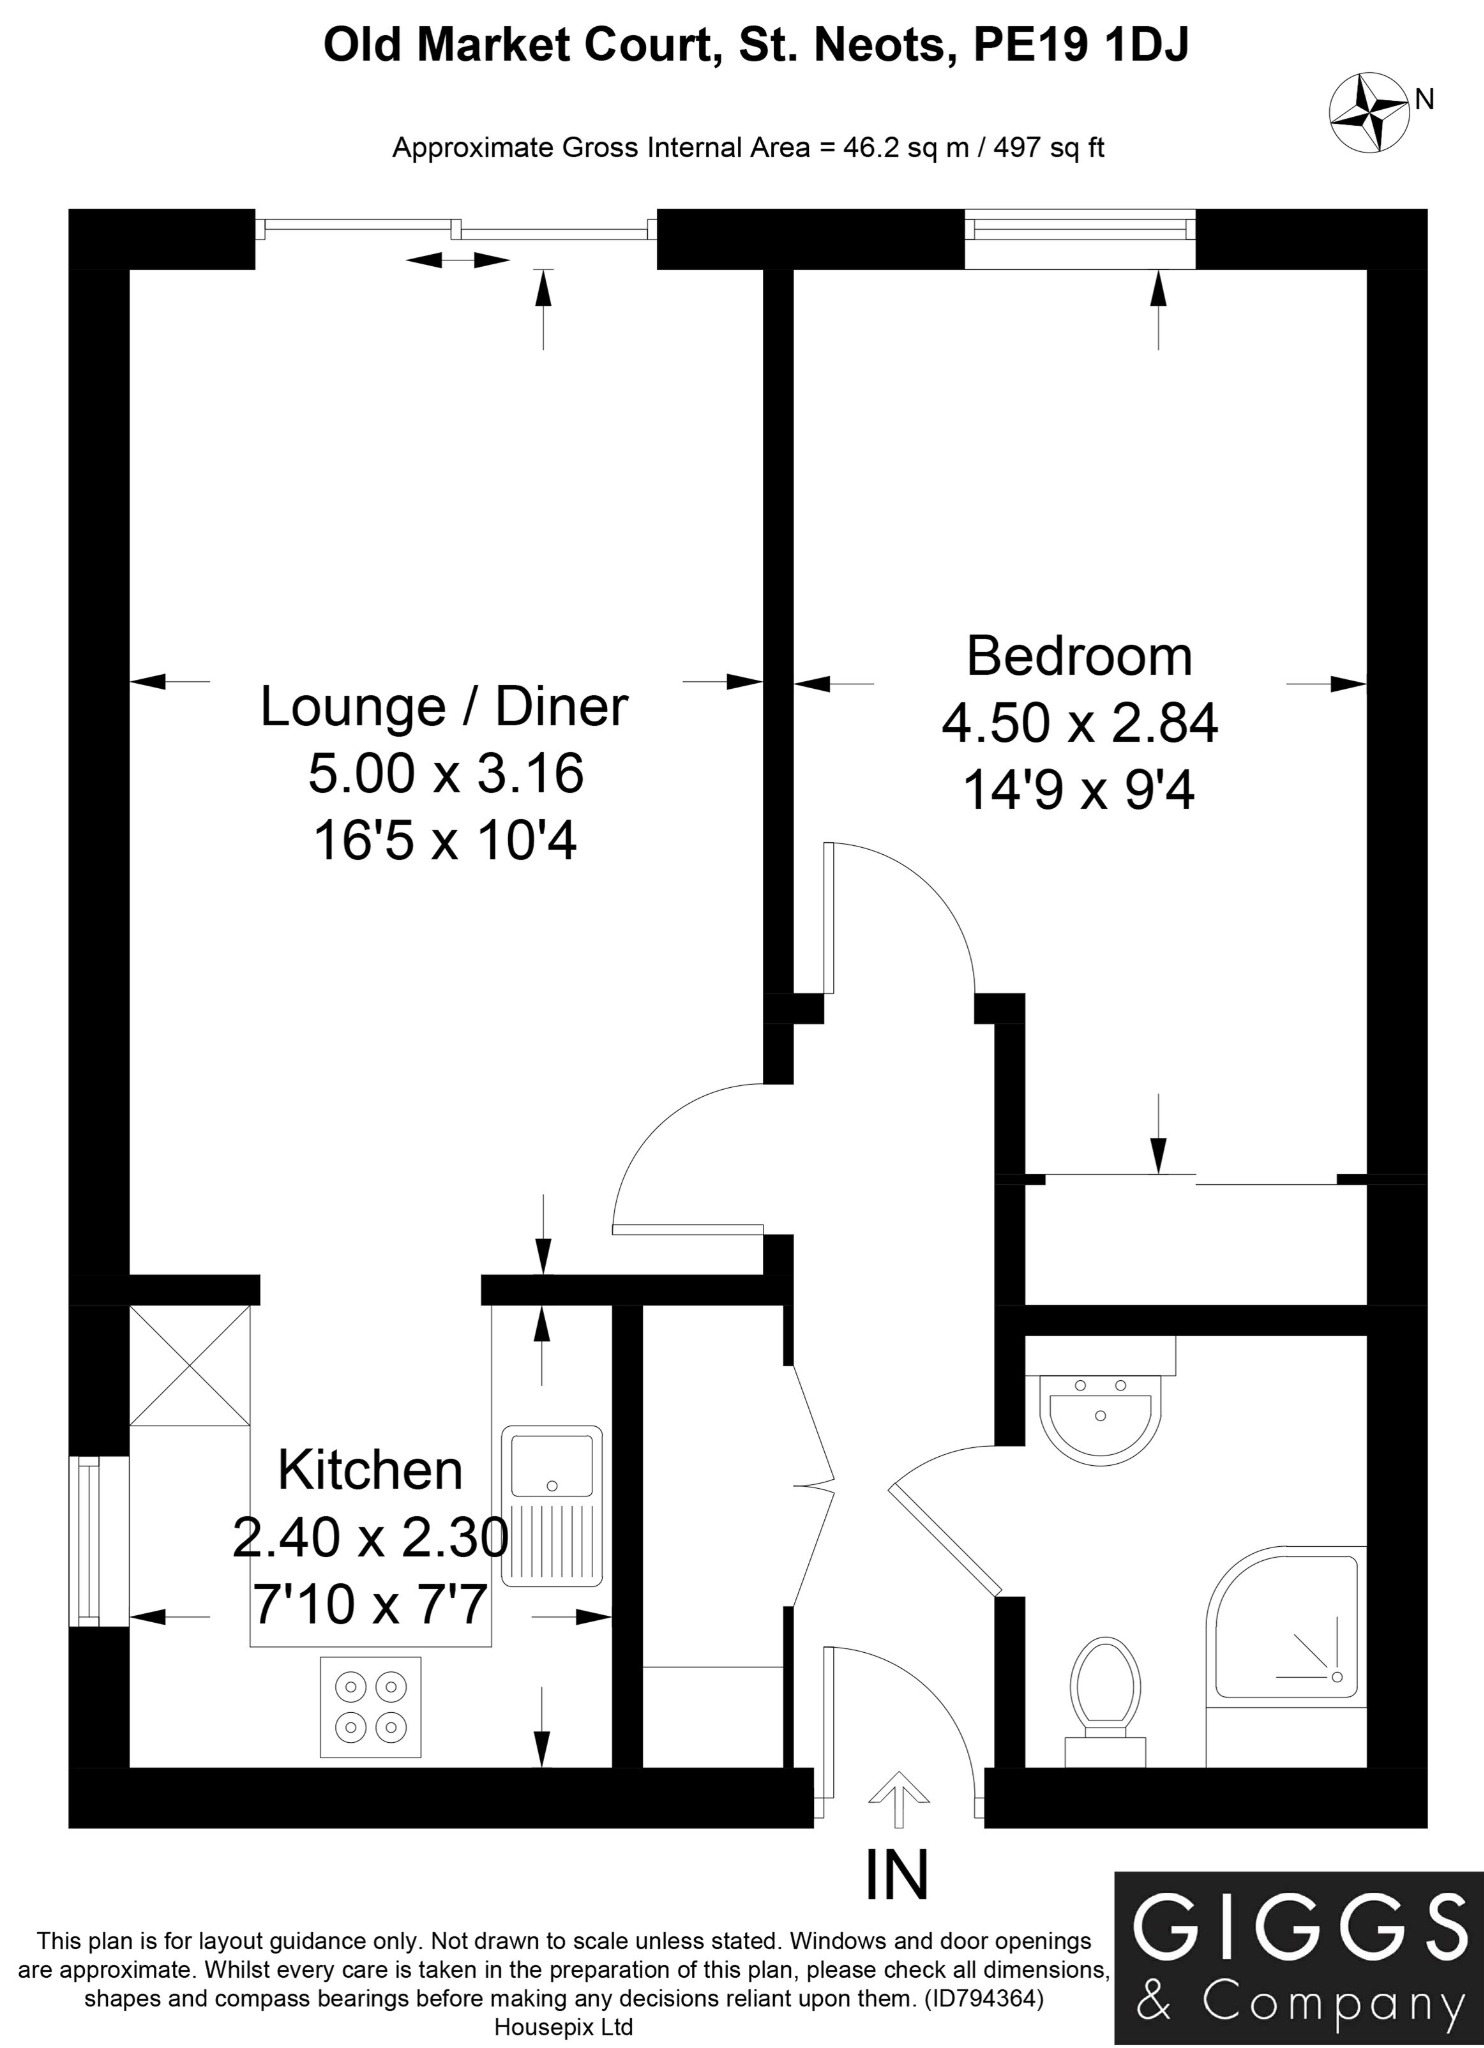 1 bed ground floor flat for sale in Old Market Court, St. Neots - Property Floorplan